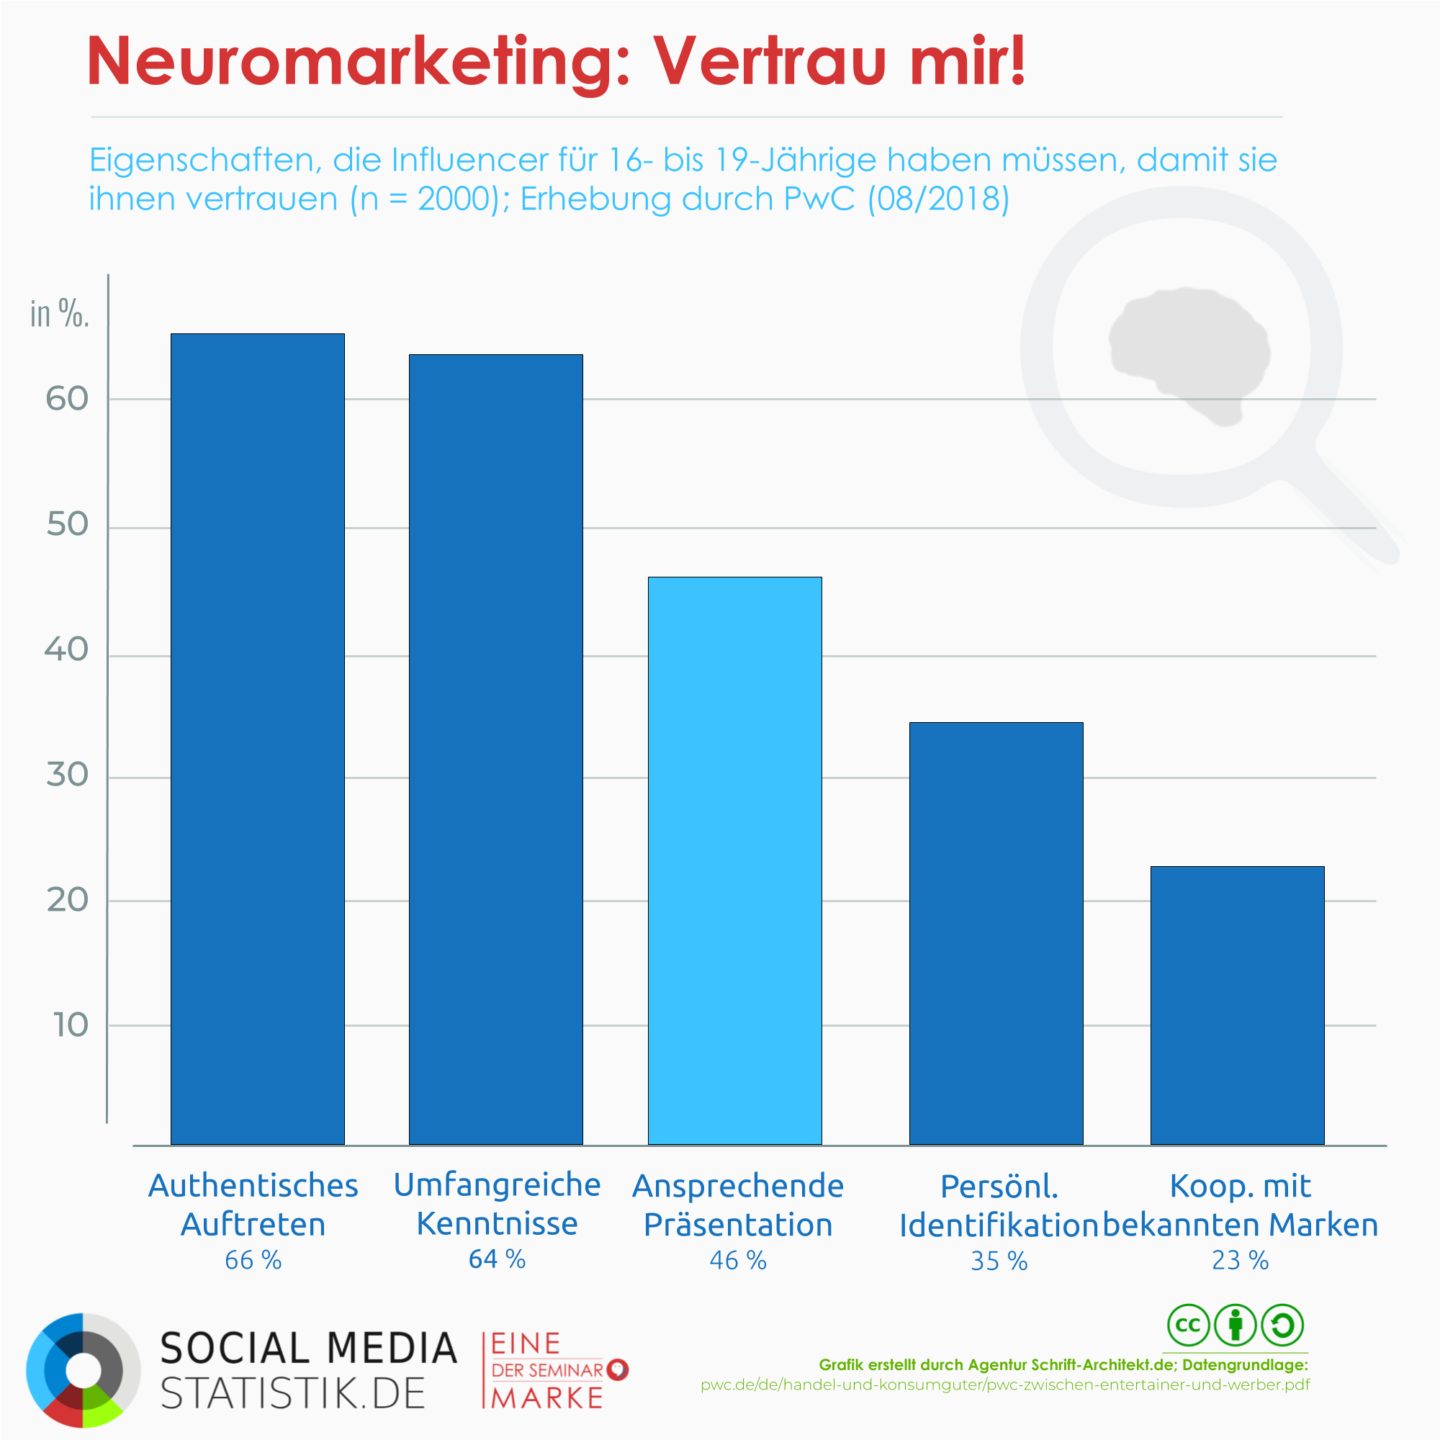 Neuromarketing: Influencern vertrauen!| Infografik